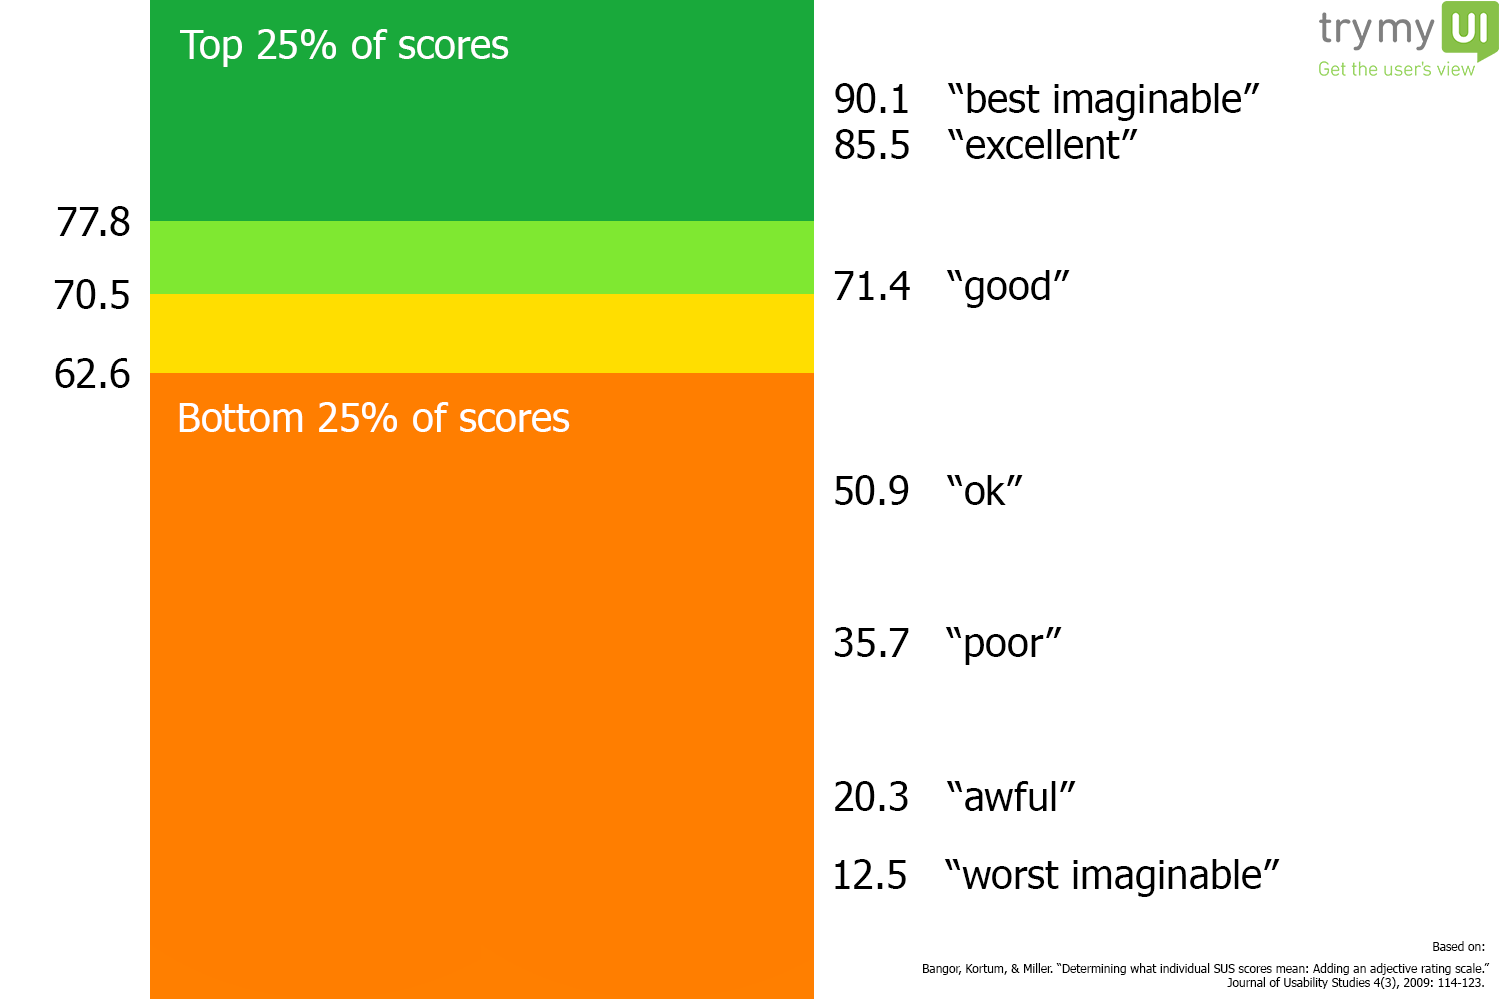 SUS System Usability Scale Scores Distribution